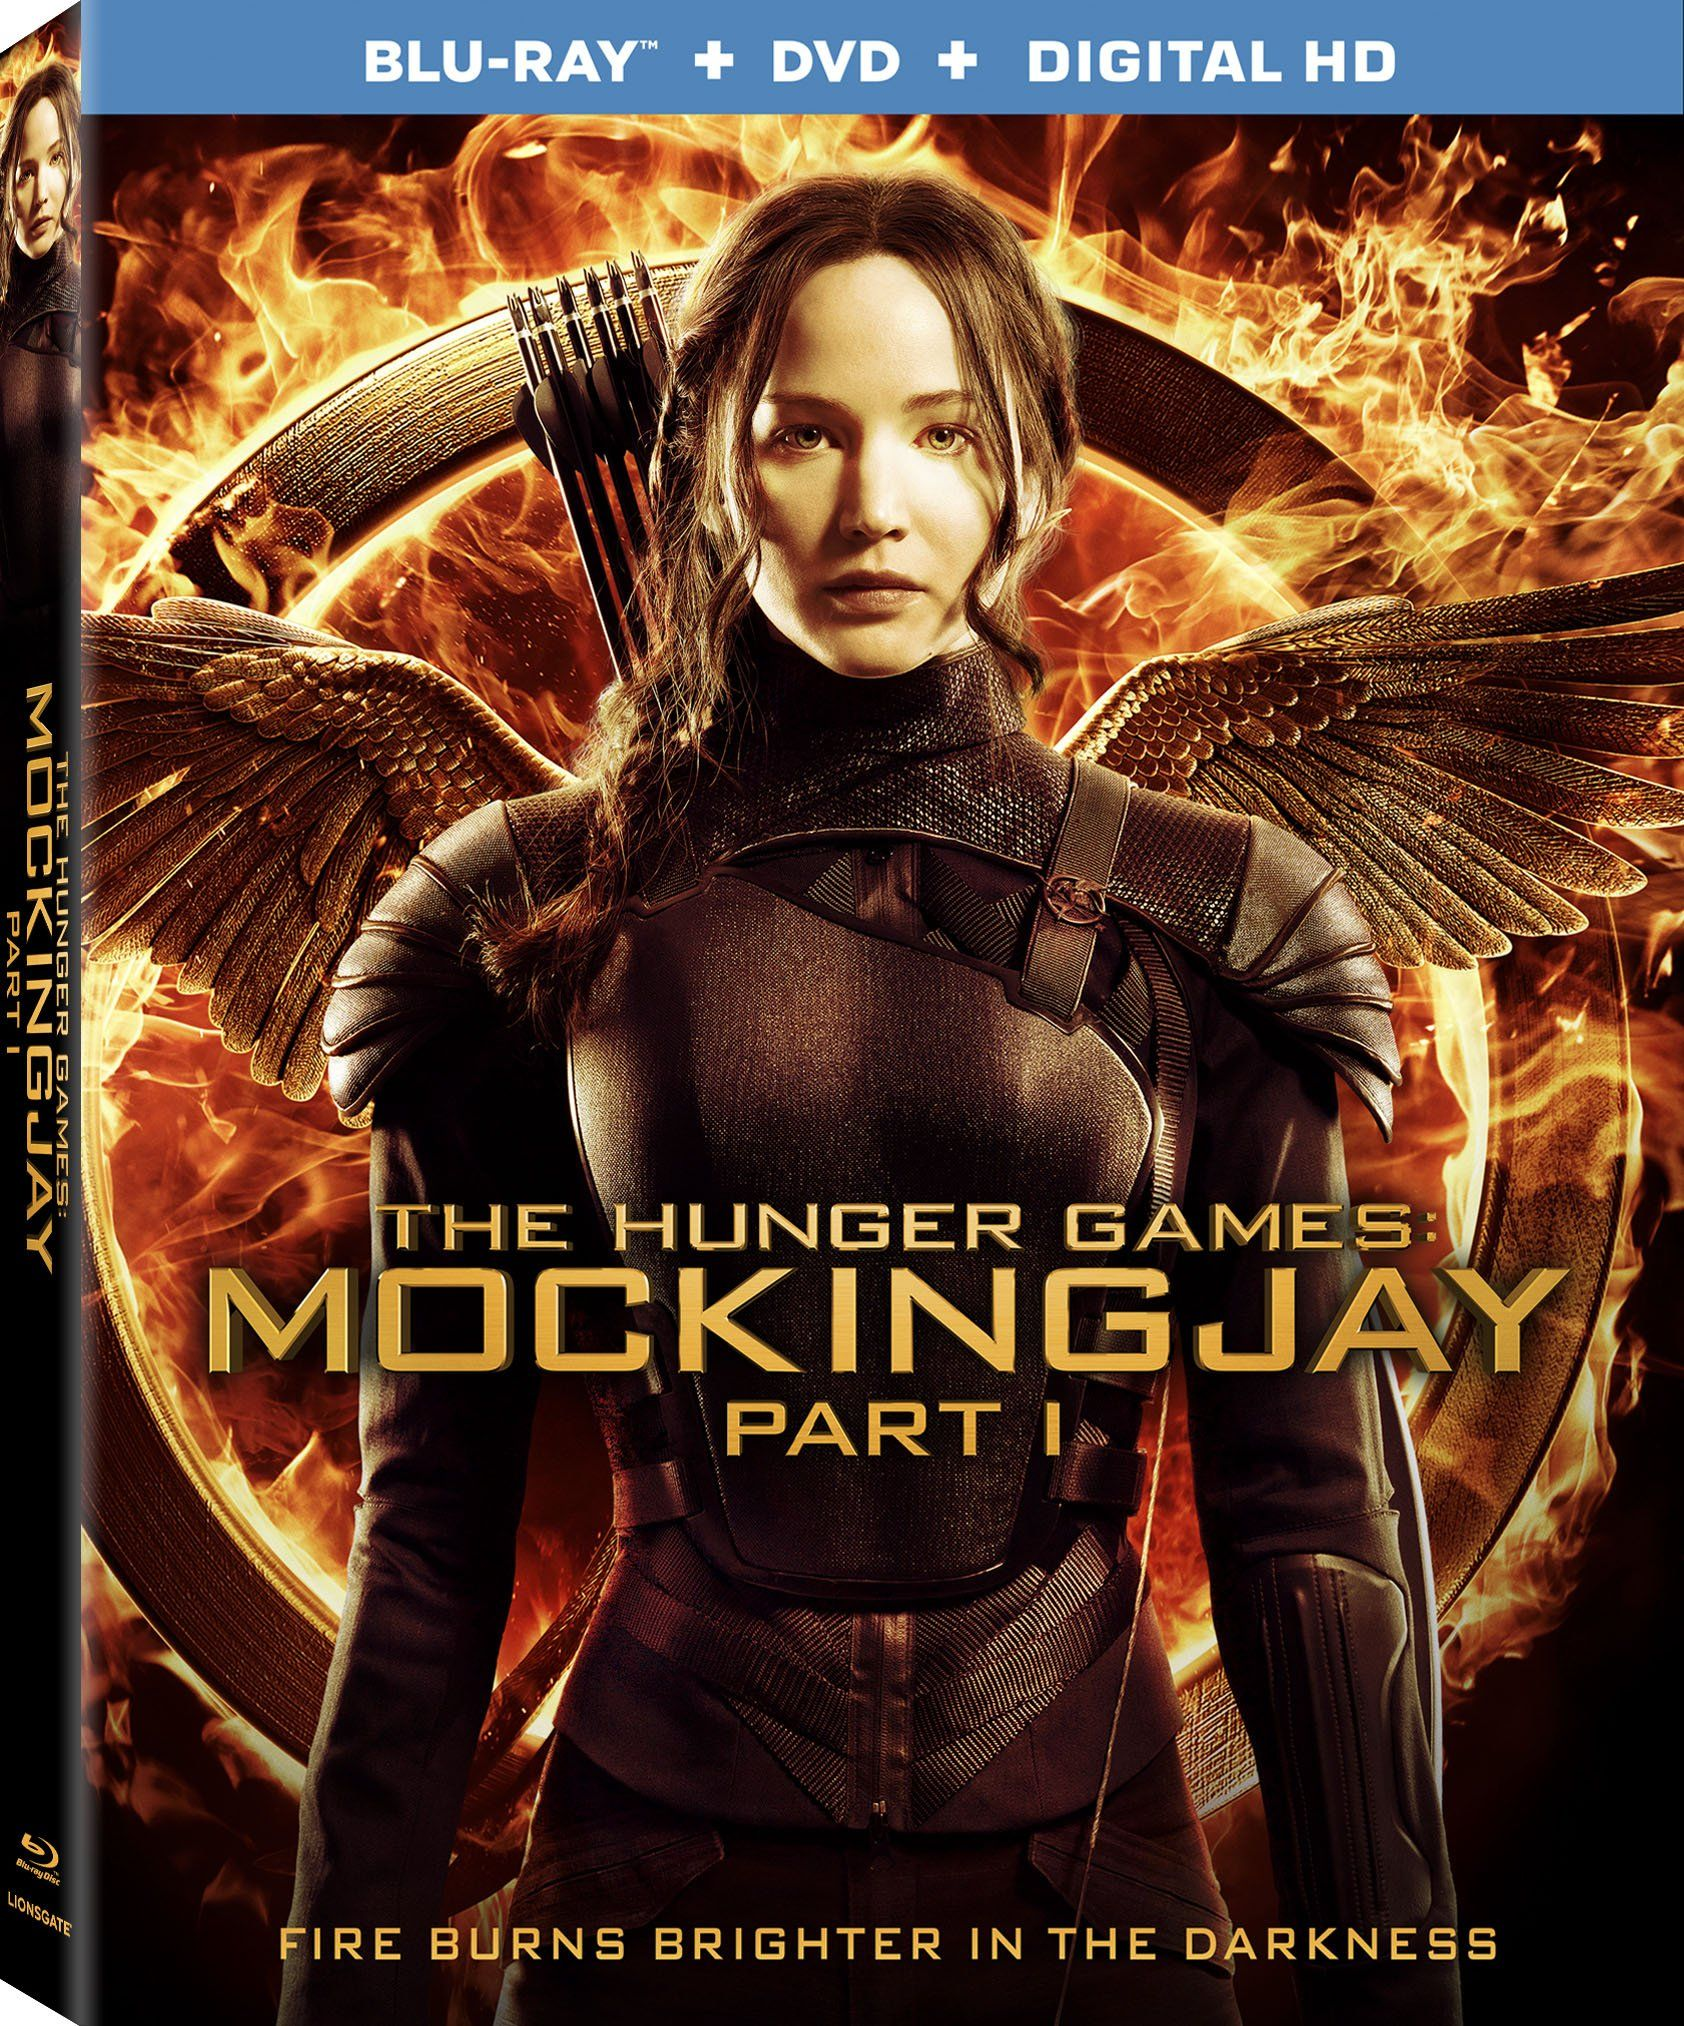 The Hunger Games: Mockingjay - Part 1 Blu-ray Review   Collider